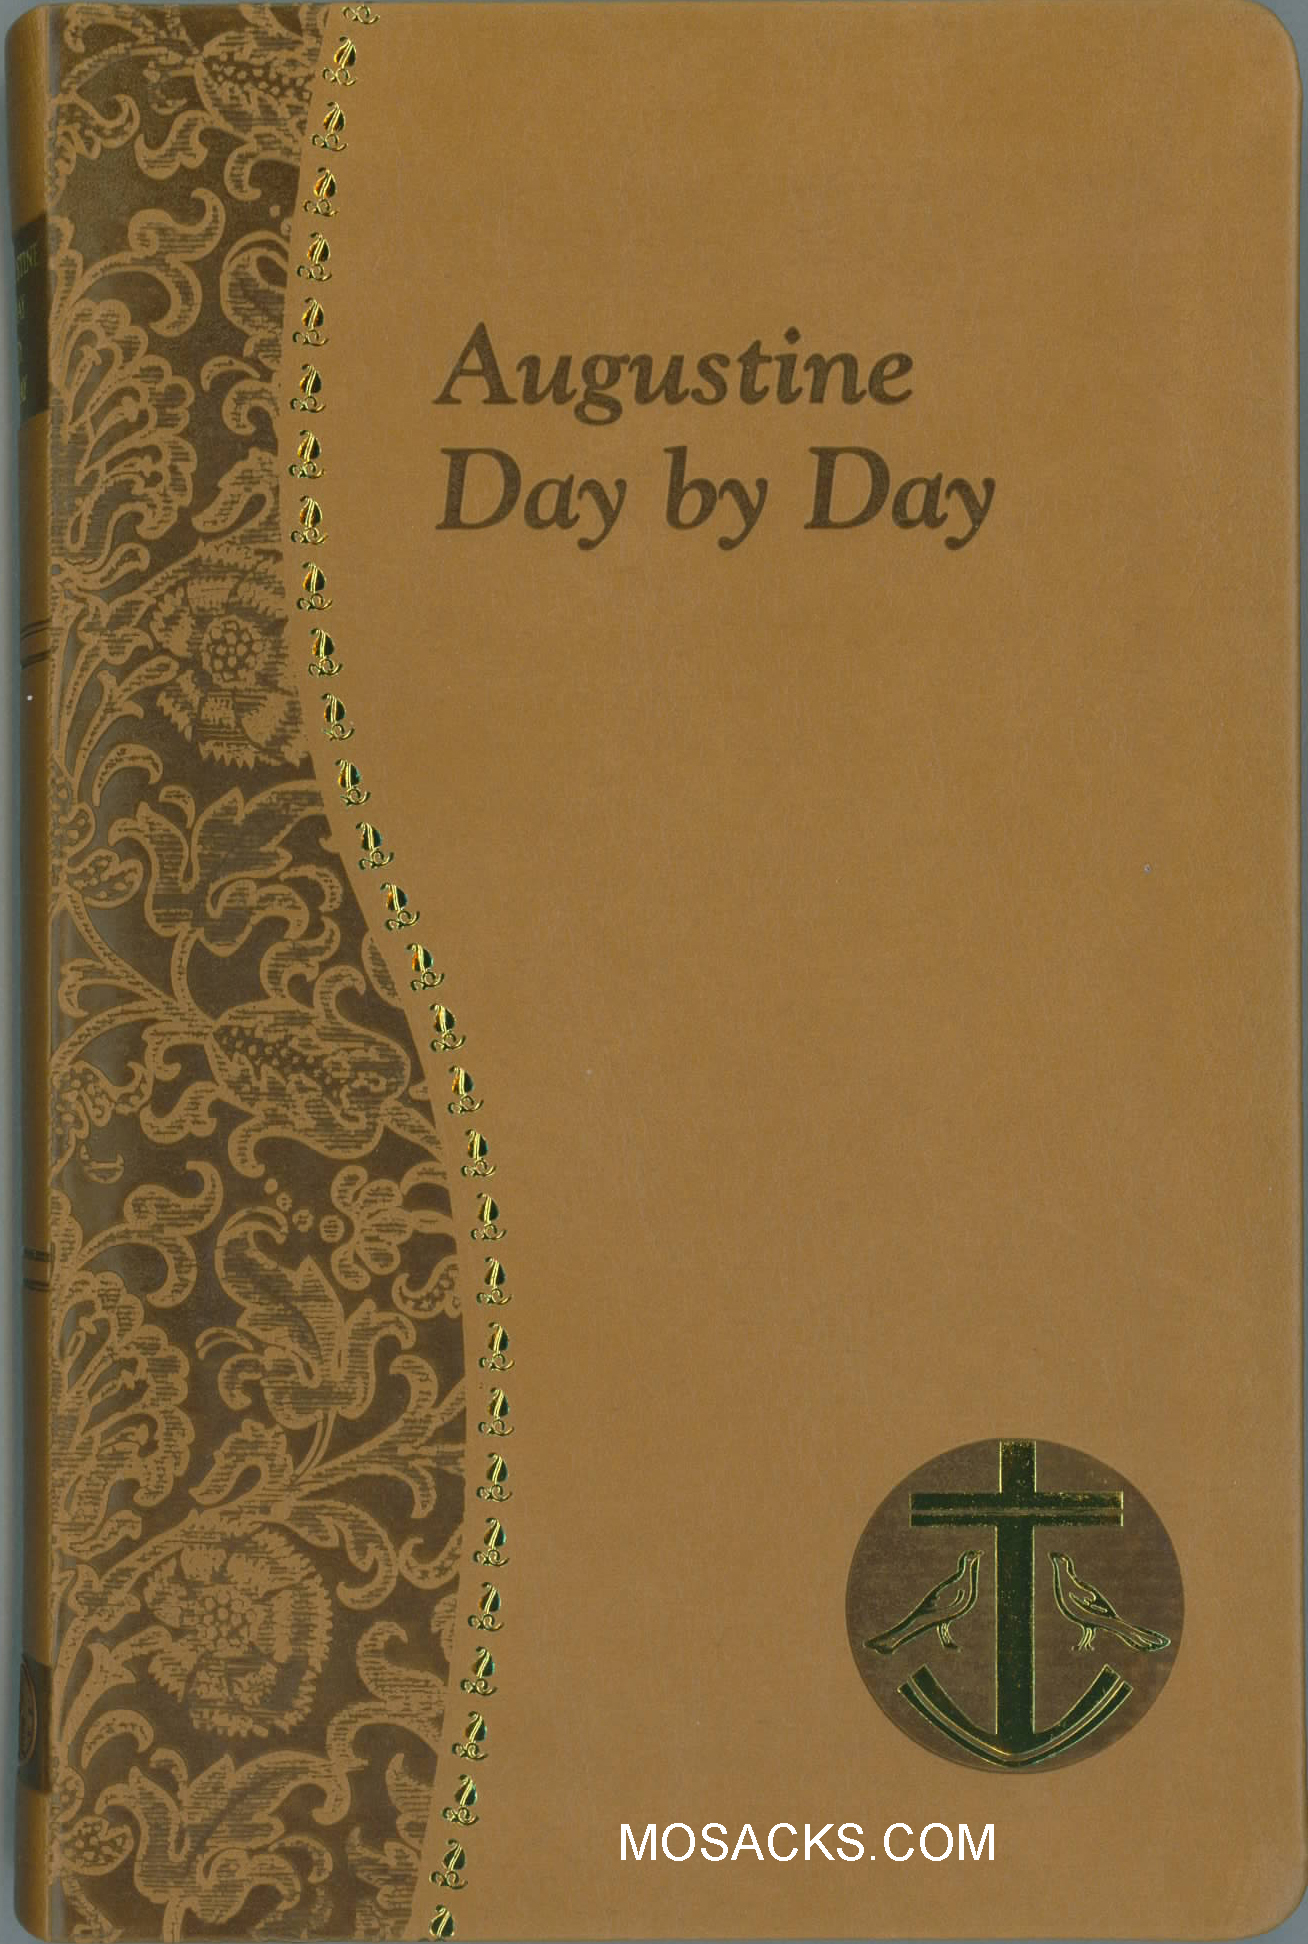 Augustine Day By Day by Rev John Rotelle-170/19